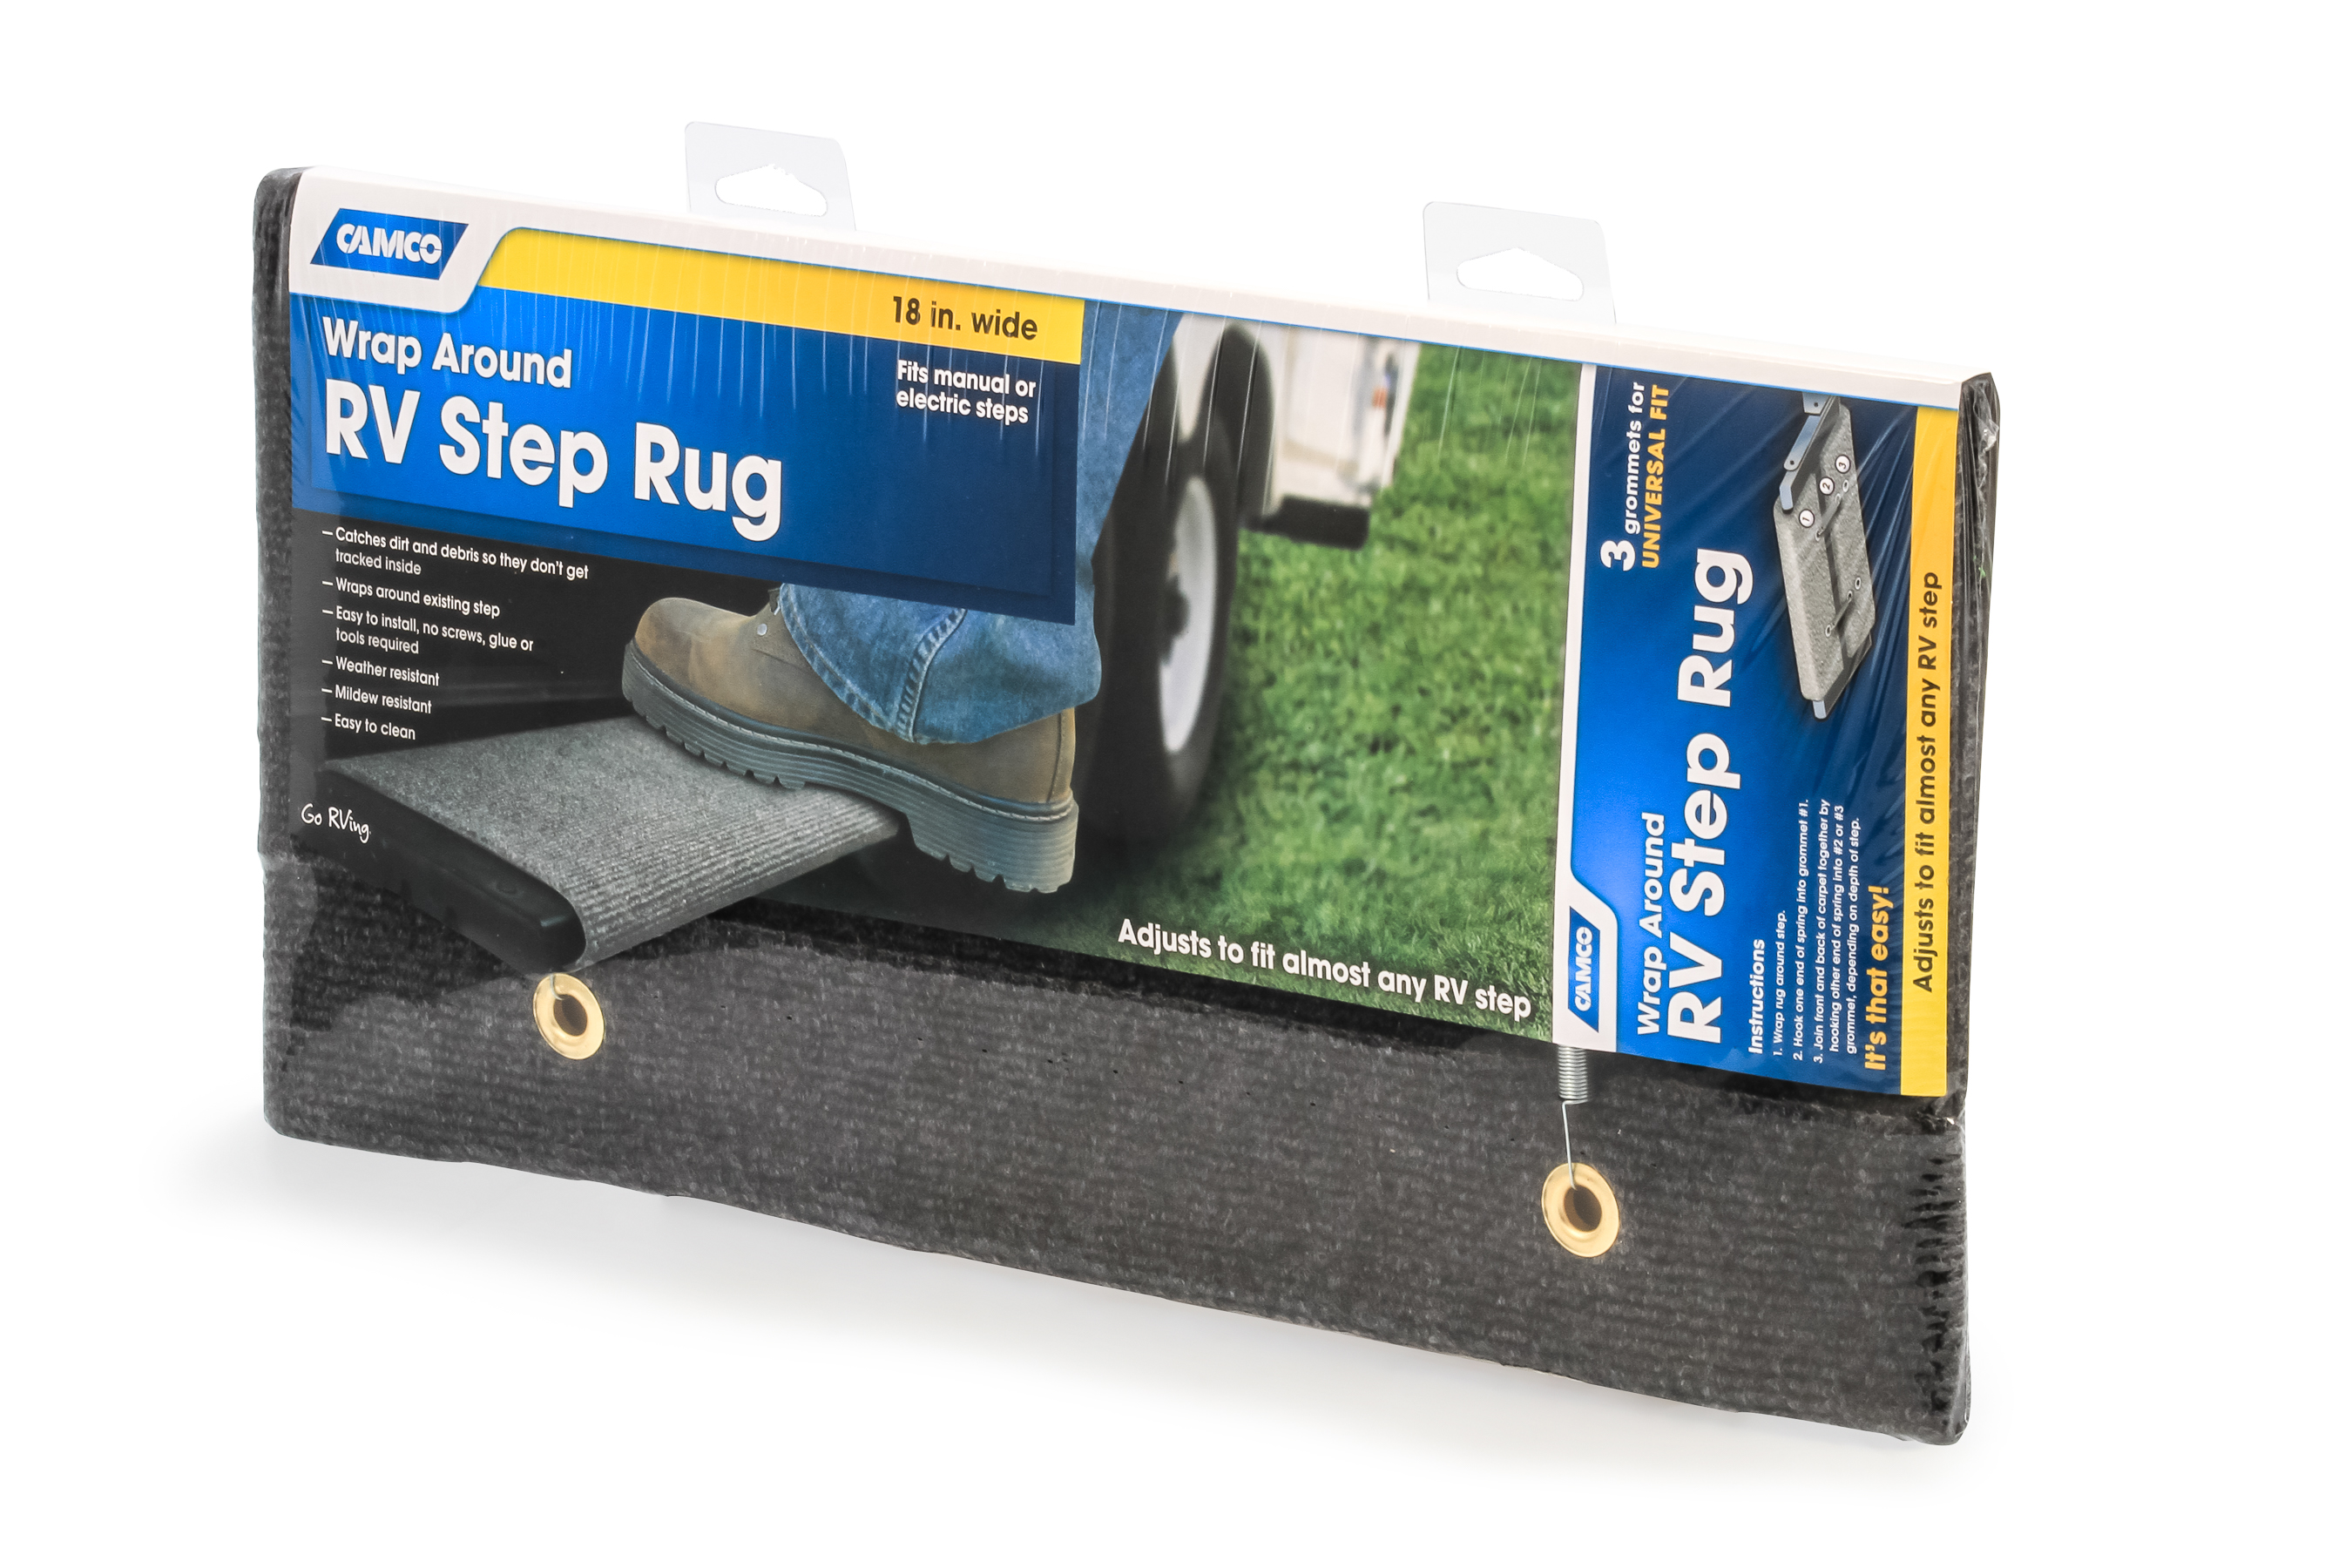 Camco 42924 Wrap Around Rv Step Rug 18 Wide Protects Your From Unwanted Tracked In Dirt Works On Electrical Manual Steps Blue